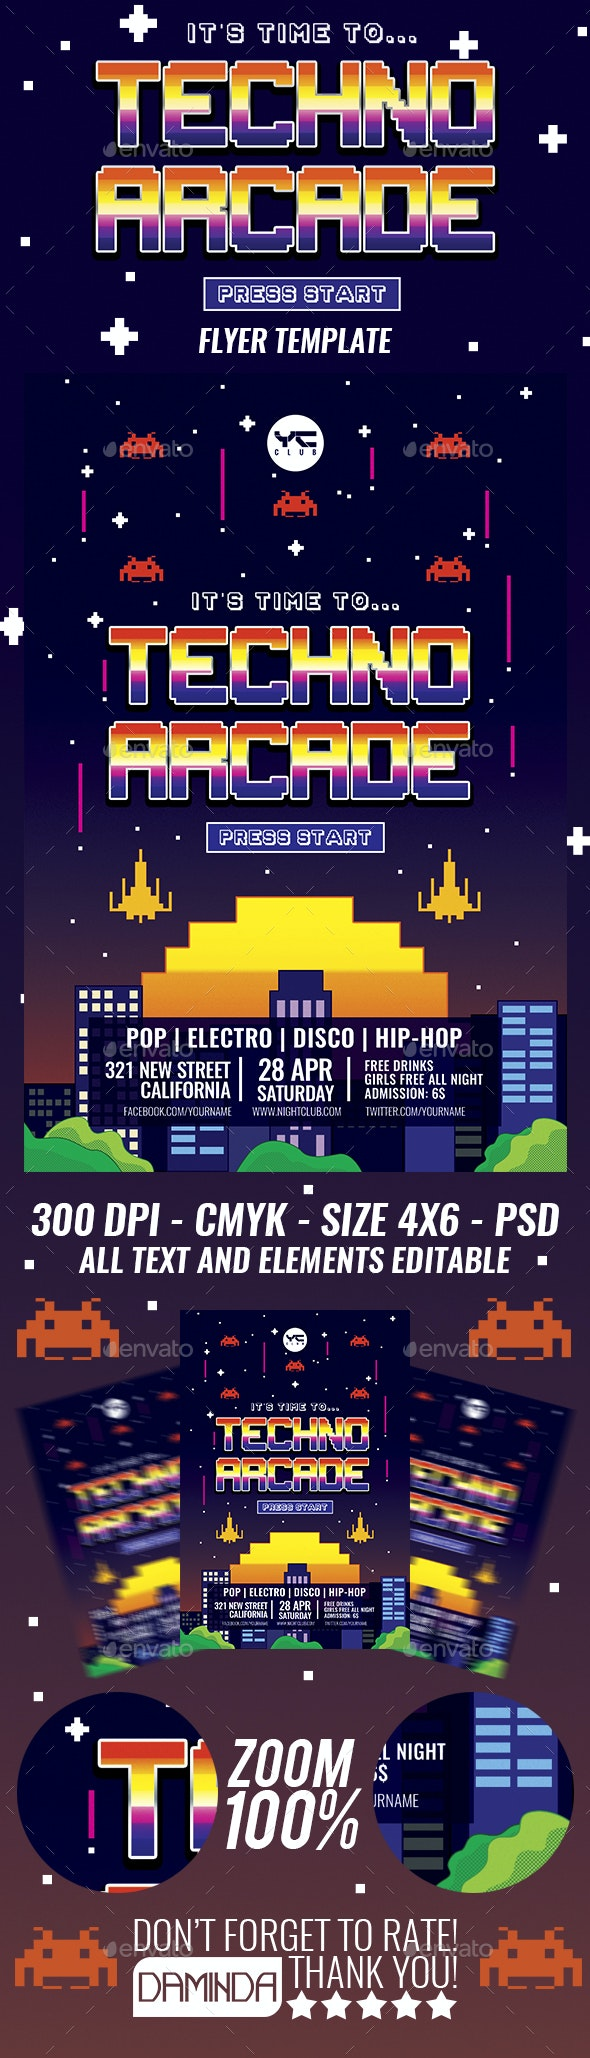 Techno Arcade Flyer Template - Clubs & Parties Events